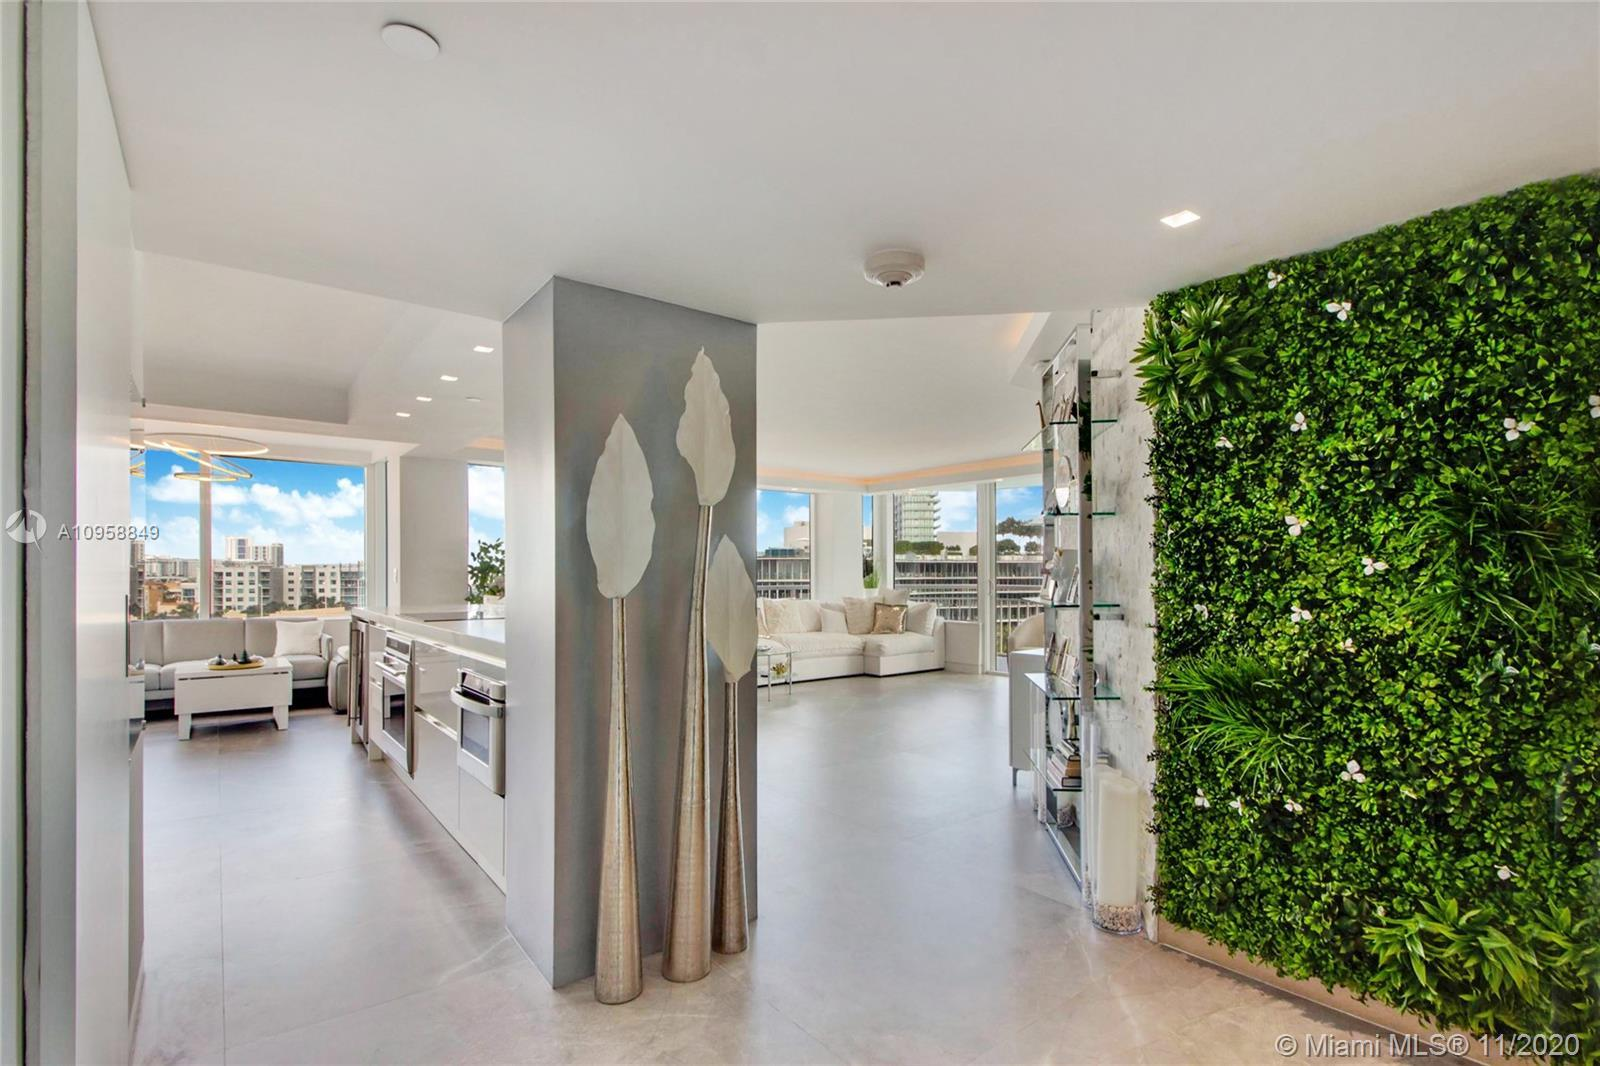 From the double door entrance to the wrap around balcony and views, this exquisite, turn-key, N.E co